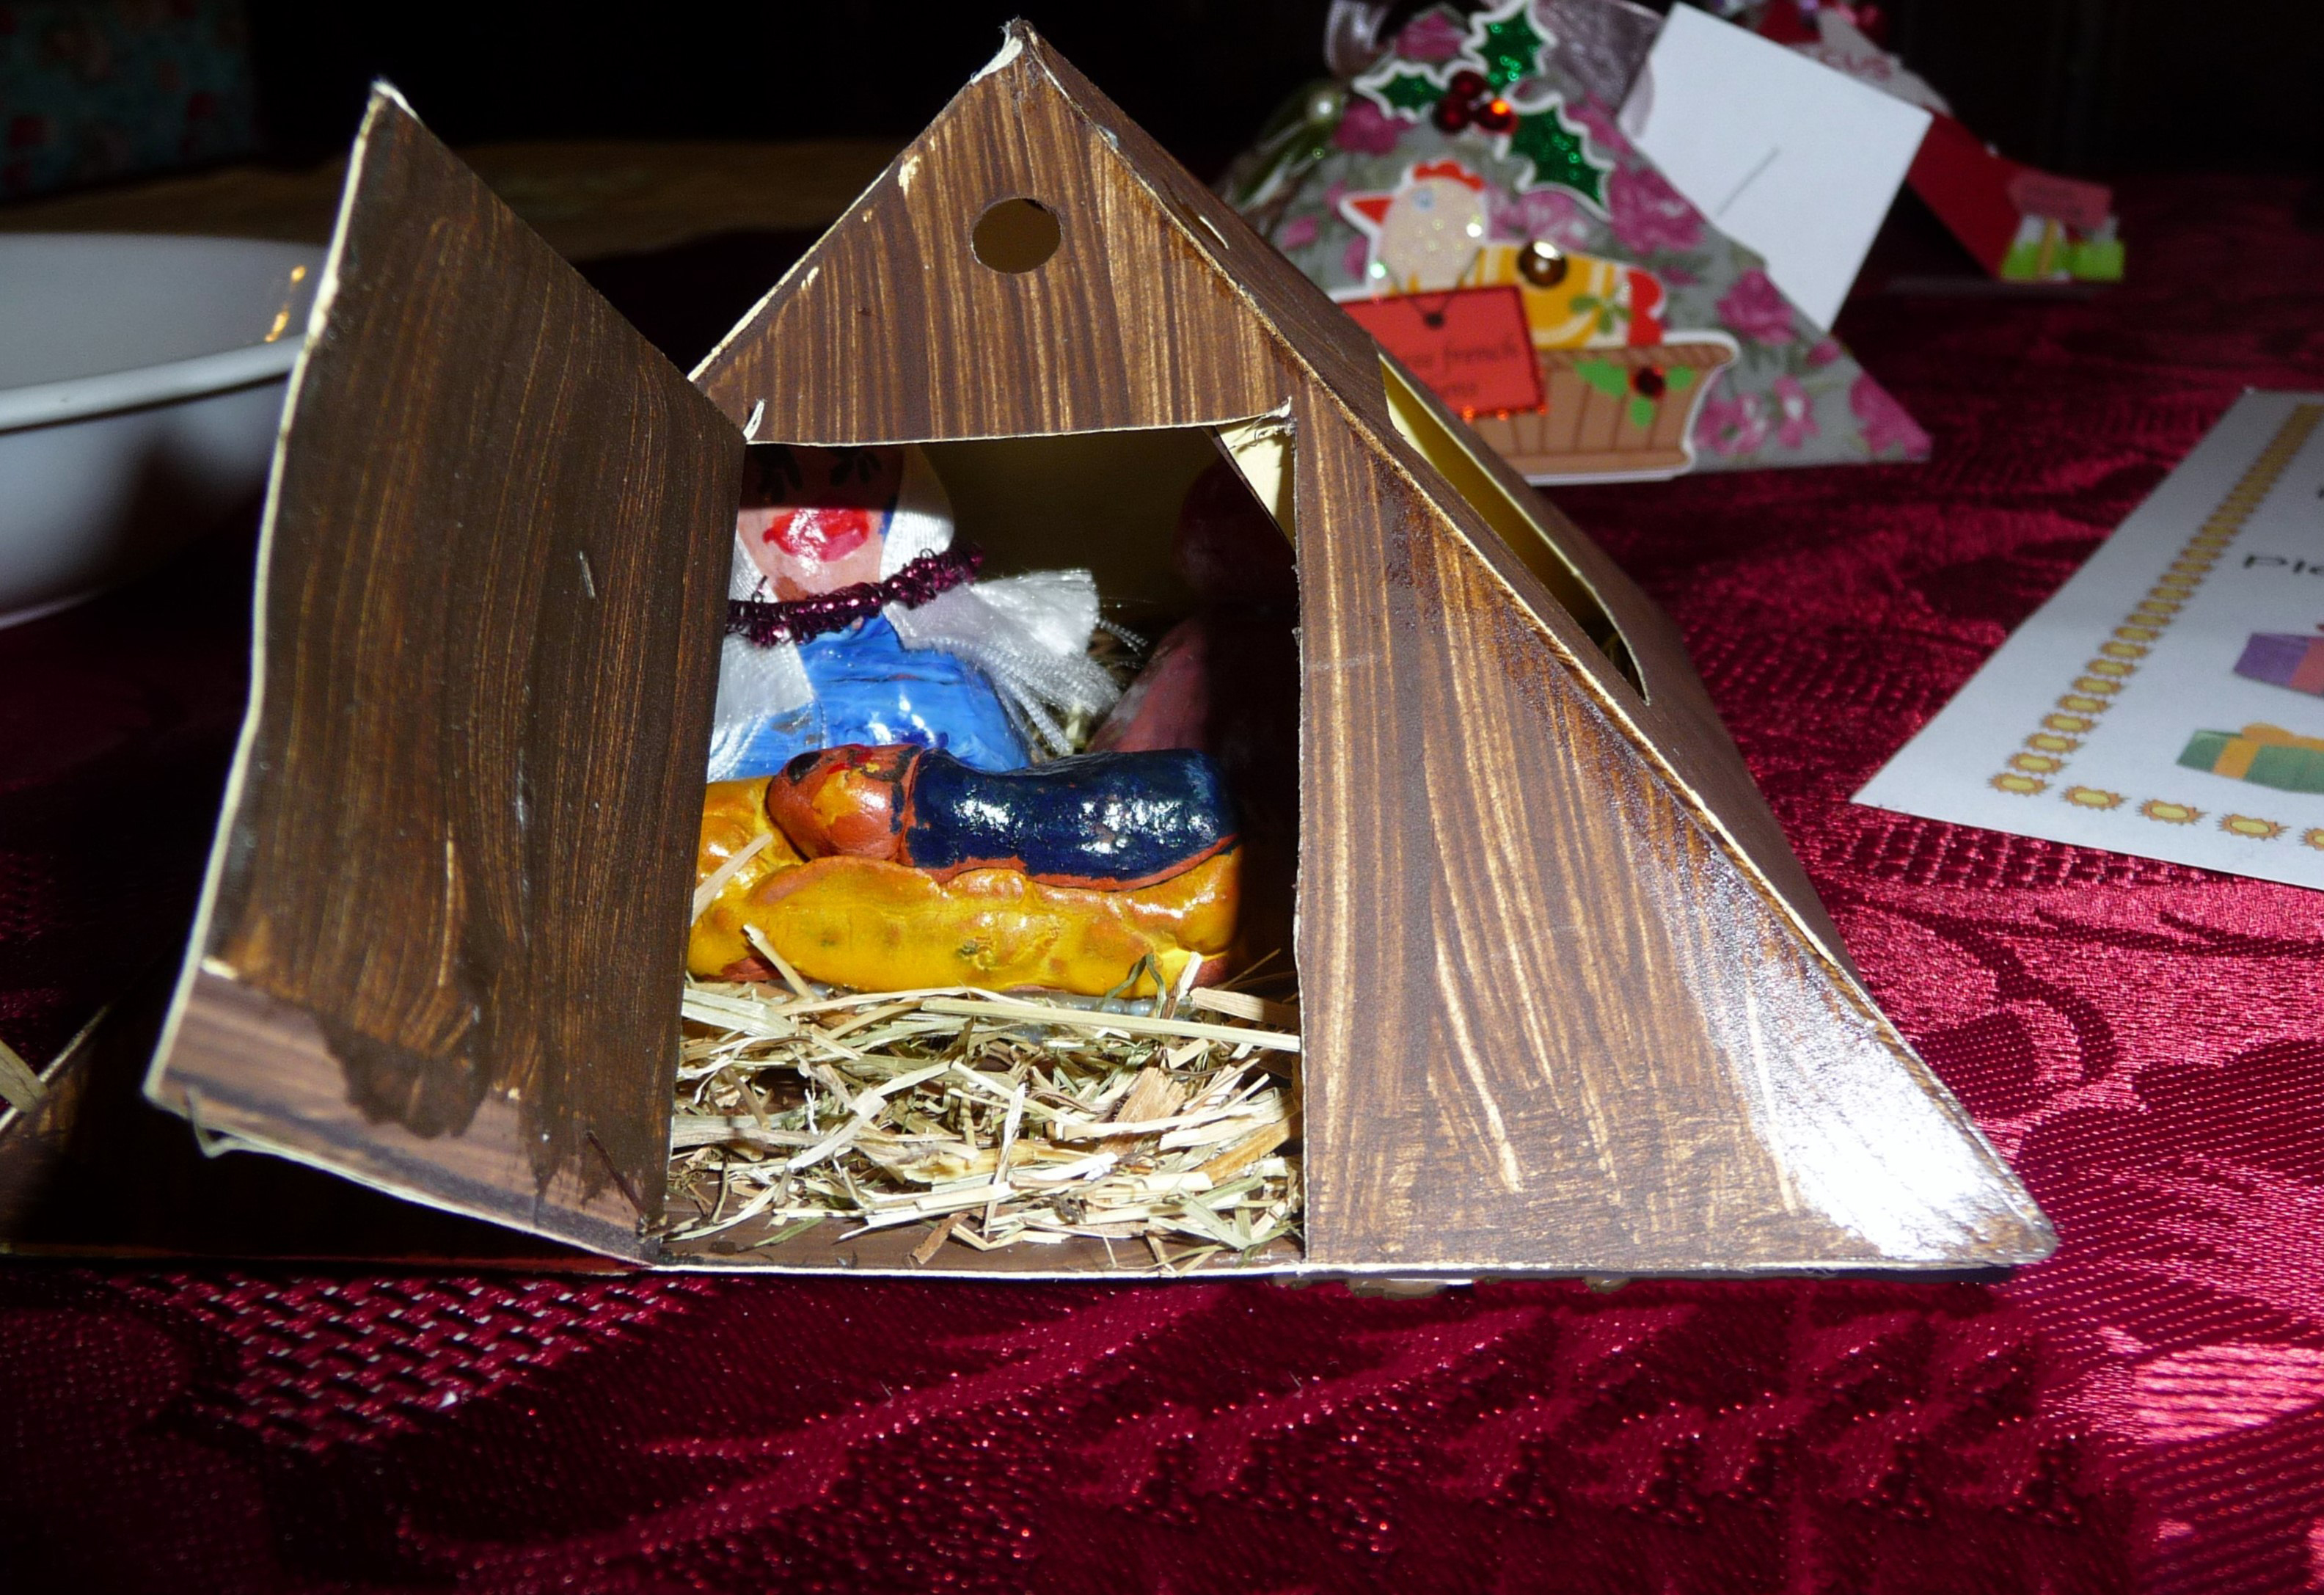 This is the winning entry to YE Christmas competition 2015. It is a Nativity scene by Emma Lewis